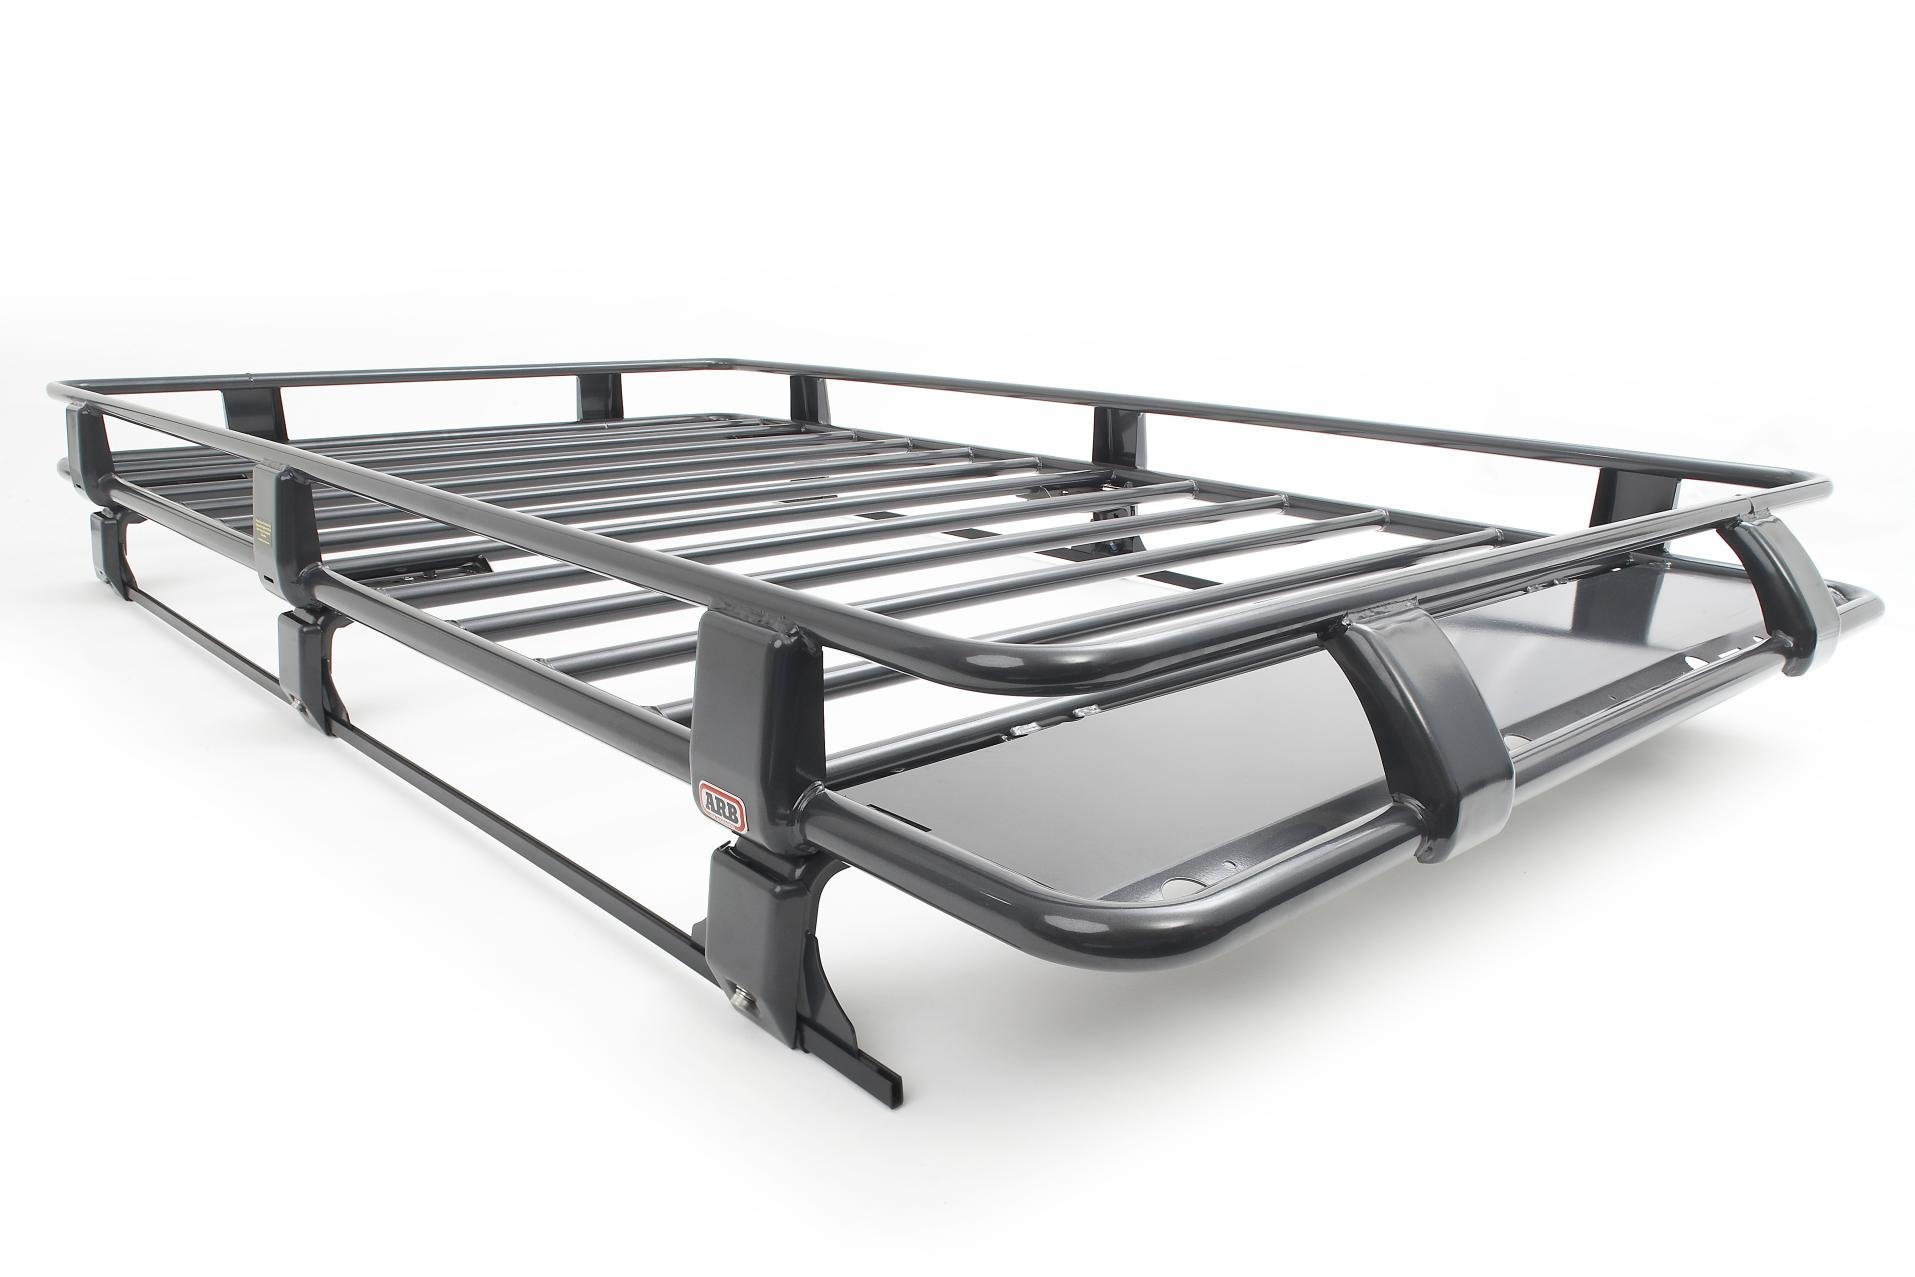 Arb 3800030m 43quot X 49quot Roof Rack With Mesh Floor For 84 01